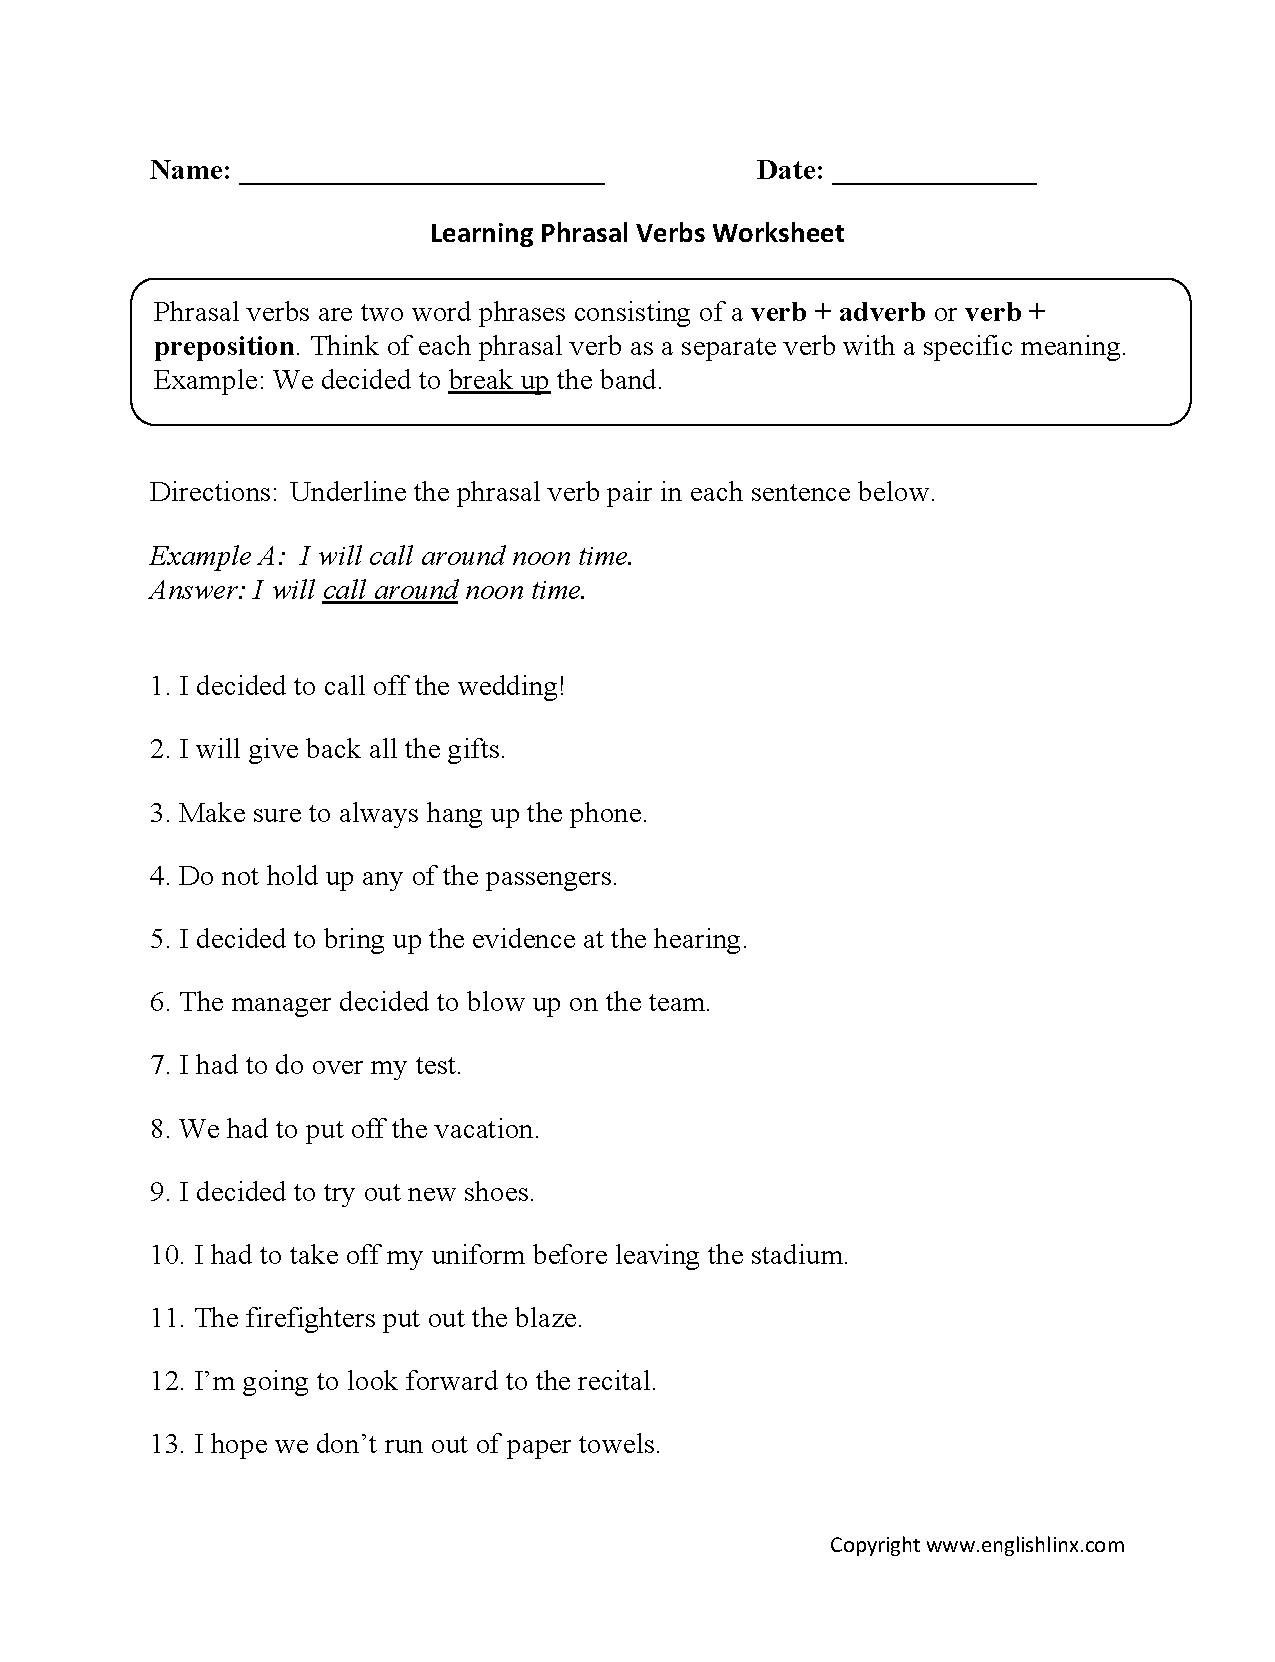 hight resolution of Phrasal Verbs Worksheets   Verb worksheets